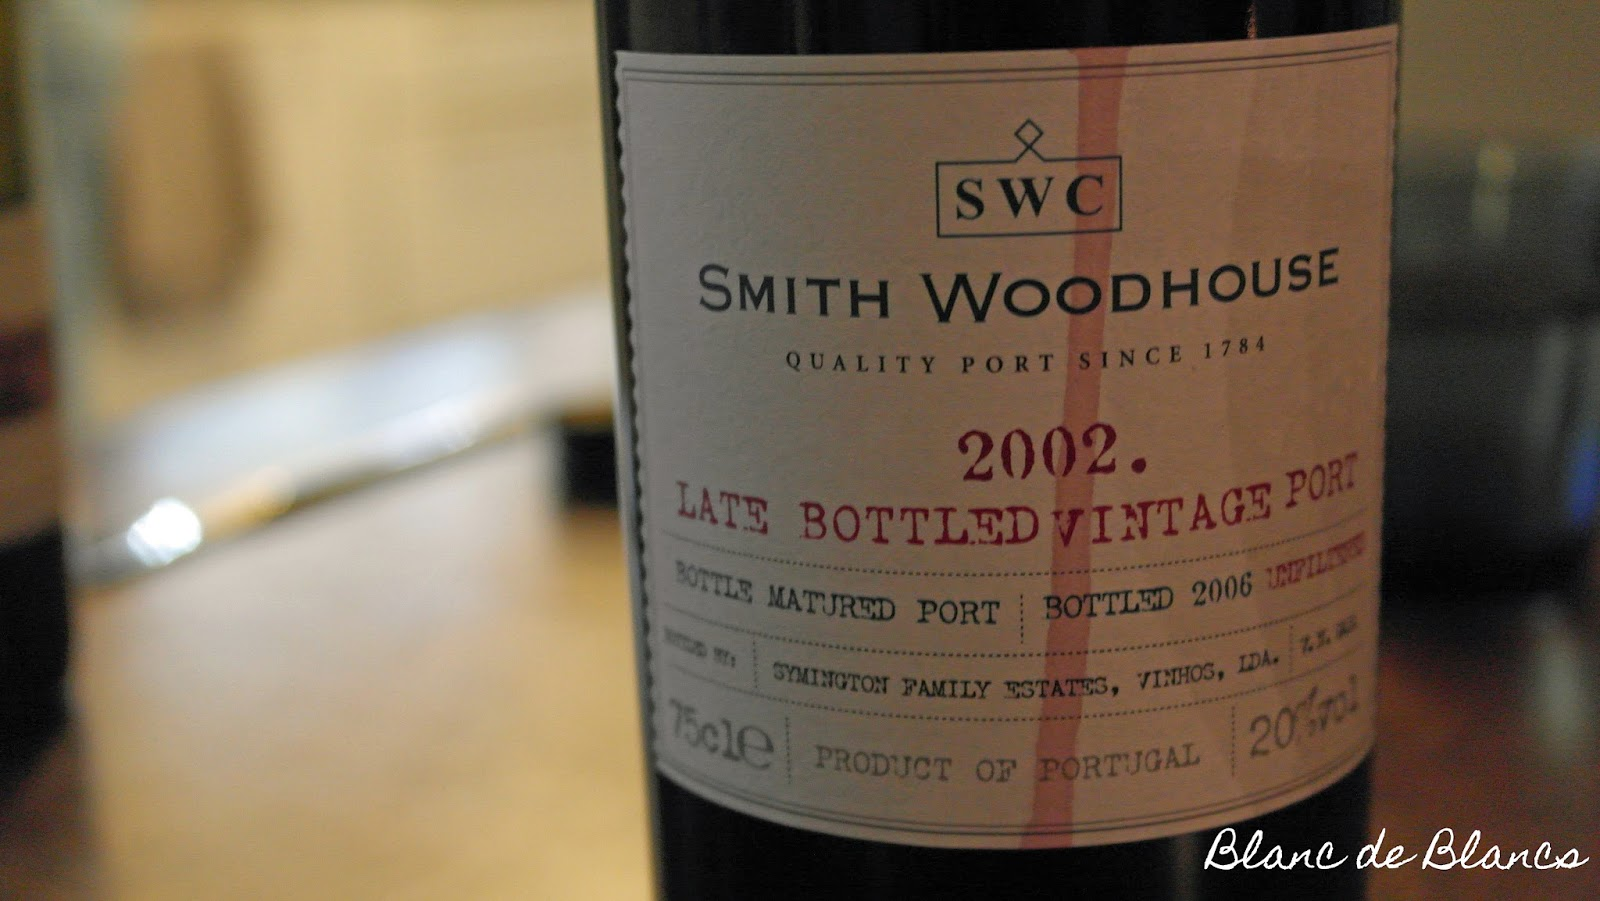 Smith Woodhouse Late Bottled Vintage 2002 - www.blancdeblancs.fi